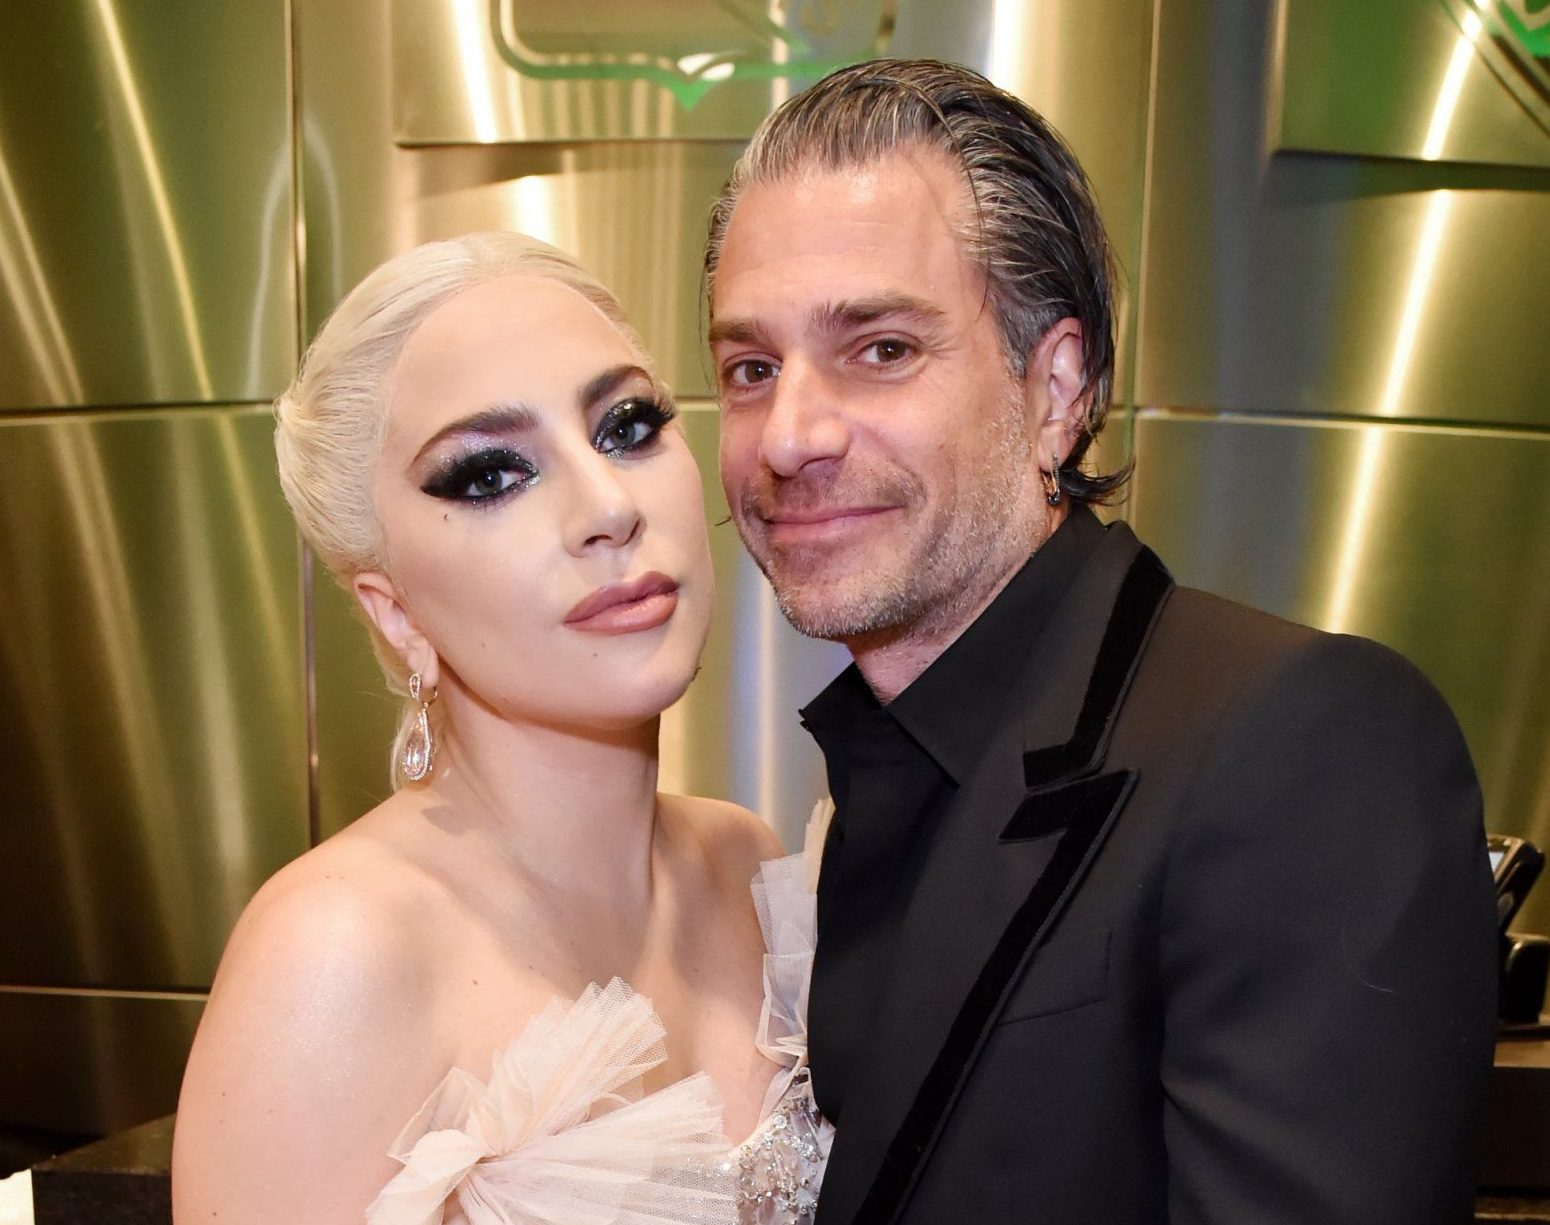 FILE - Lady Gaga Confirms Engagement To Christian Carino At Women In Hollywood Awards NEW YORK, NY - JANUARY 28: Recording artist Lady Gaga and agent Christian Carino embrace backstage at the 60th Annual GRAMMY Awards at Madison Square Garden on January 28, 2018 in New York City. (Photo by Kevin Mazur/Getty Images for NARAS)